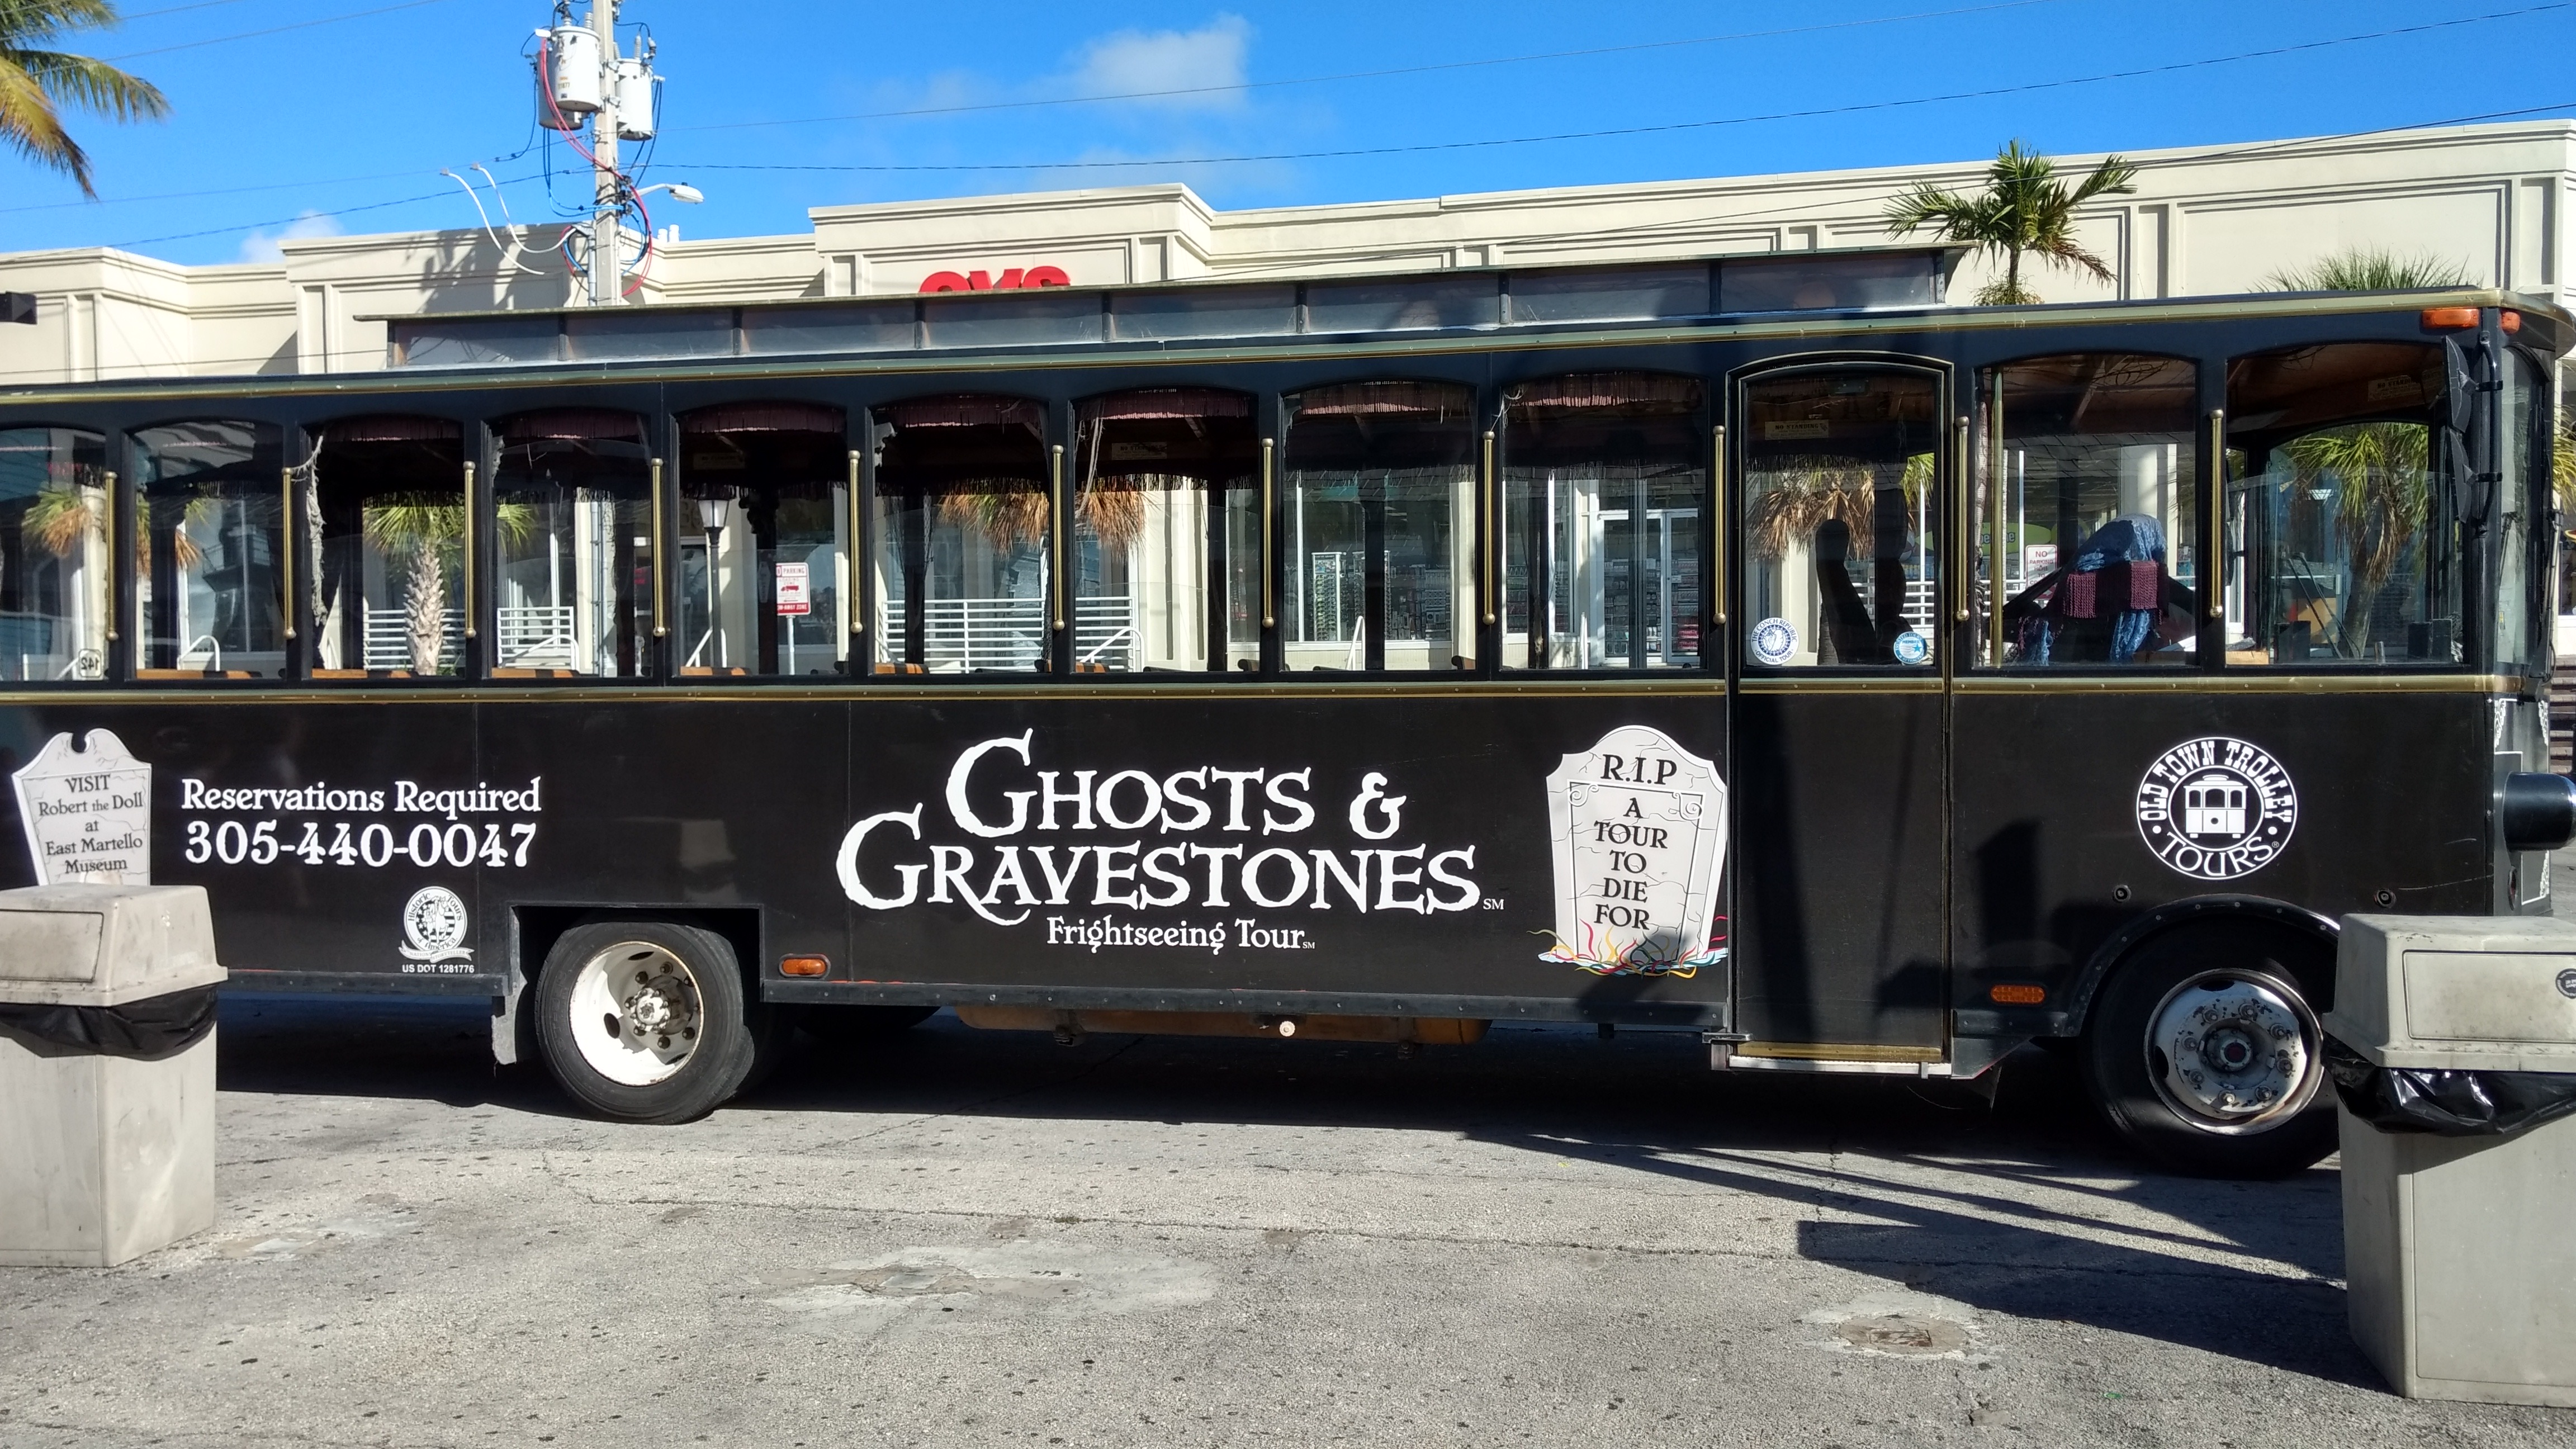 Ghosts and Gravestones bus which leaves from Mallory Square area.